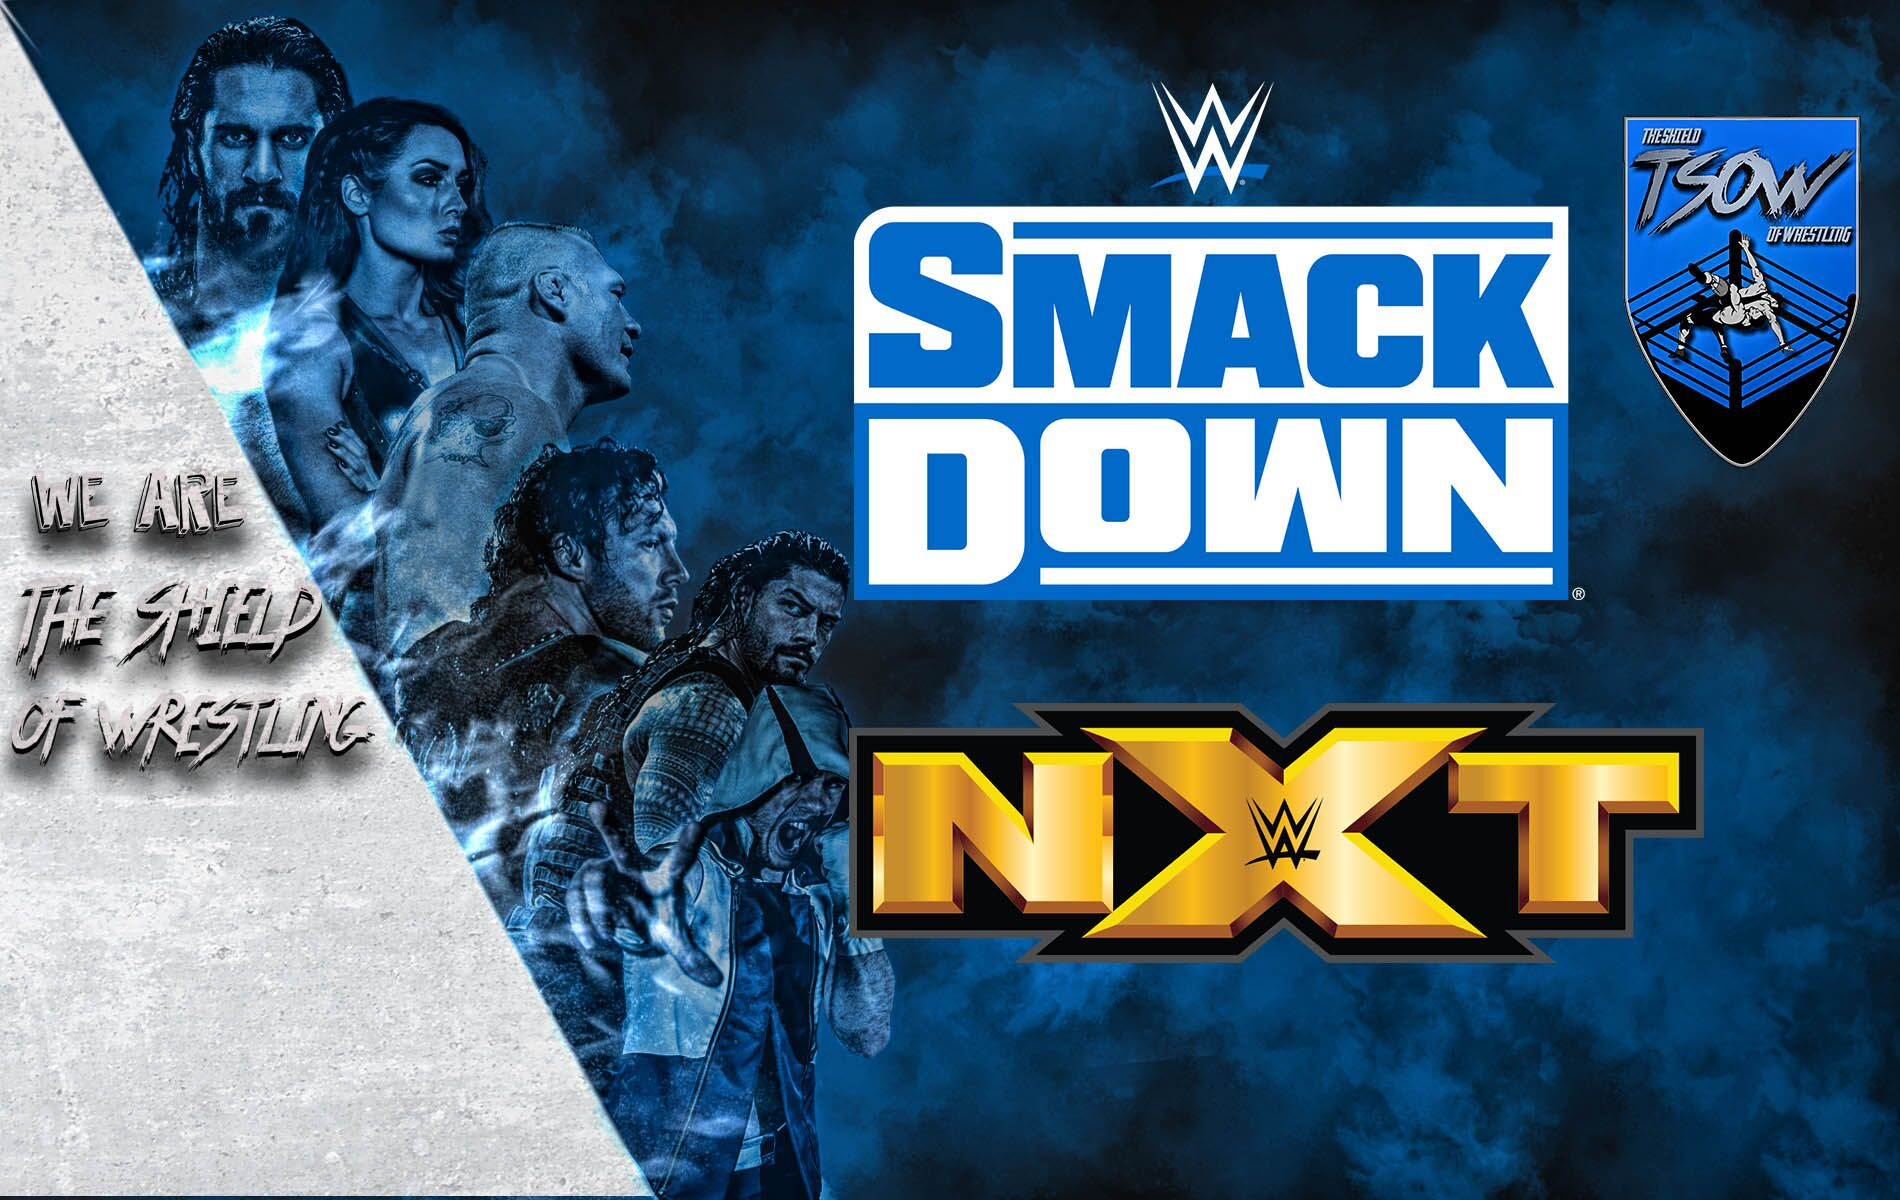 NXT invade SmackDown